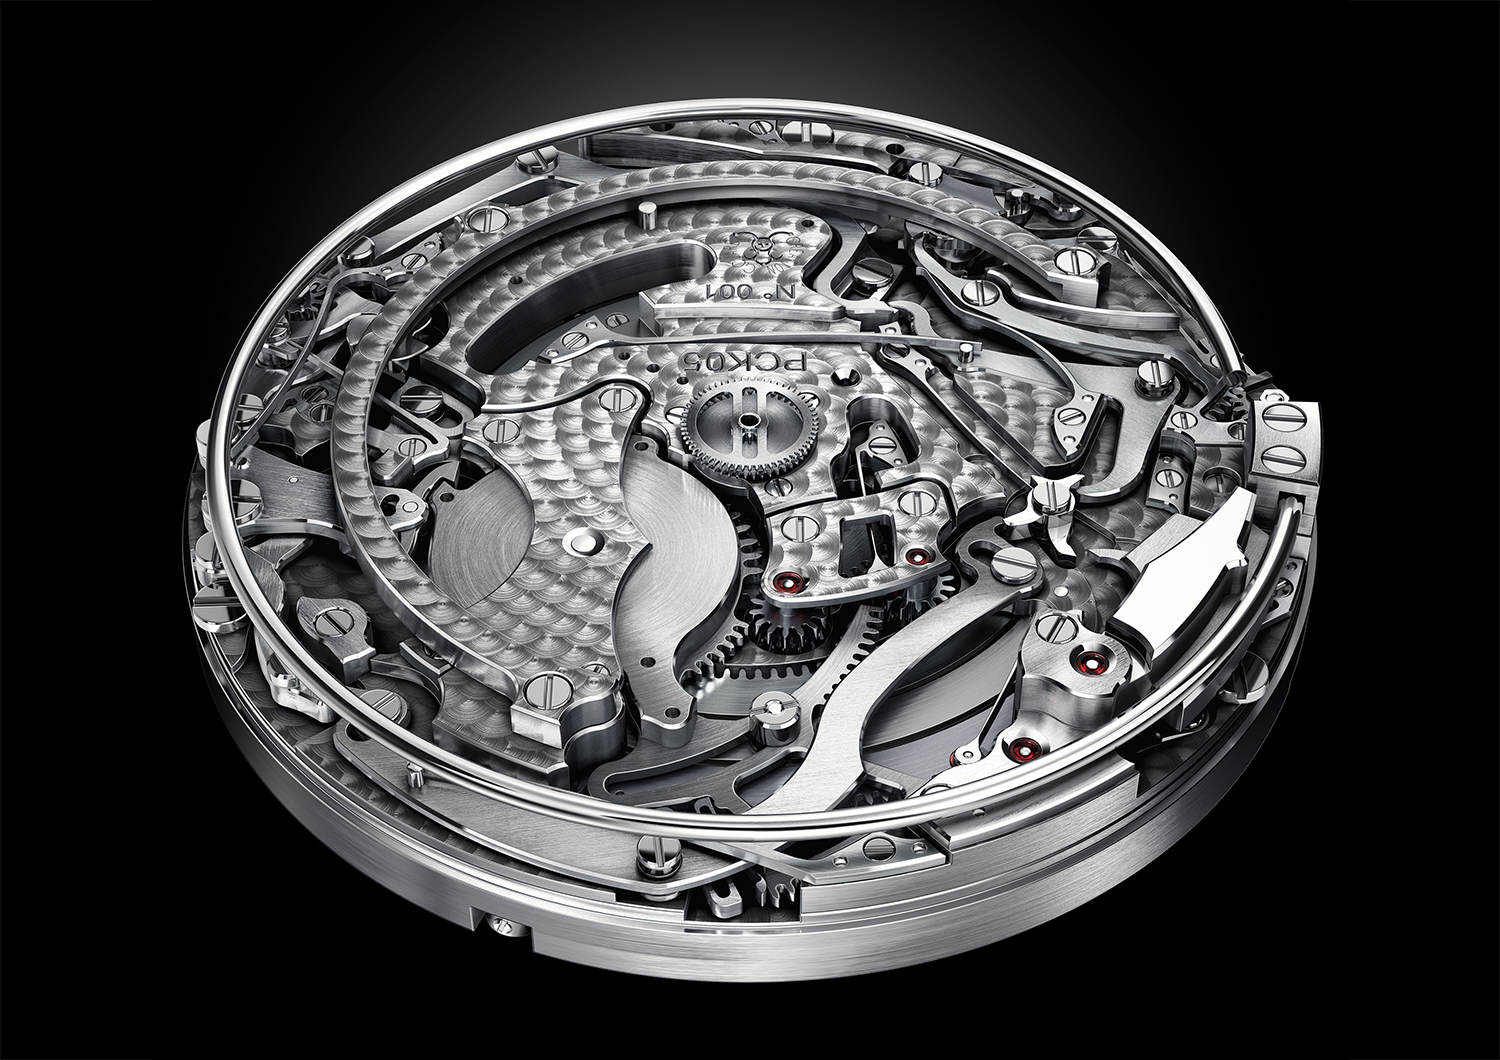 ChristopheClaret Poker Mouvement